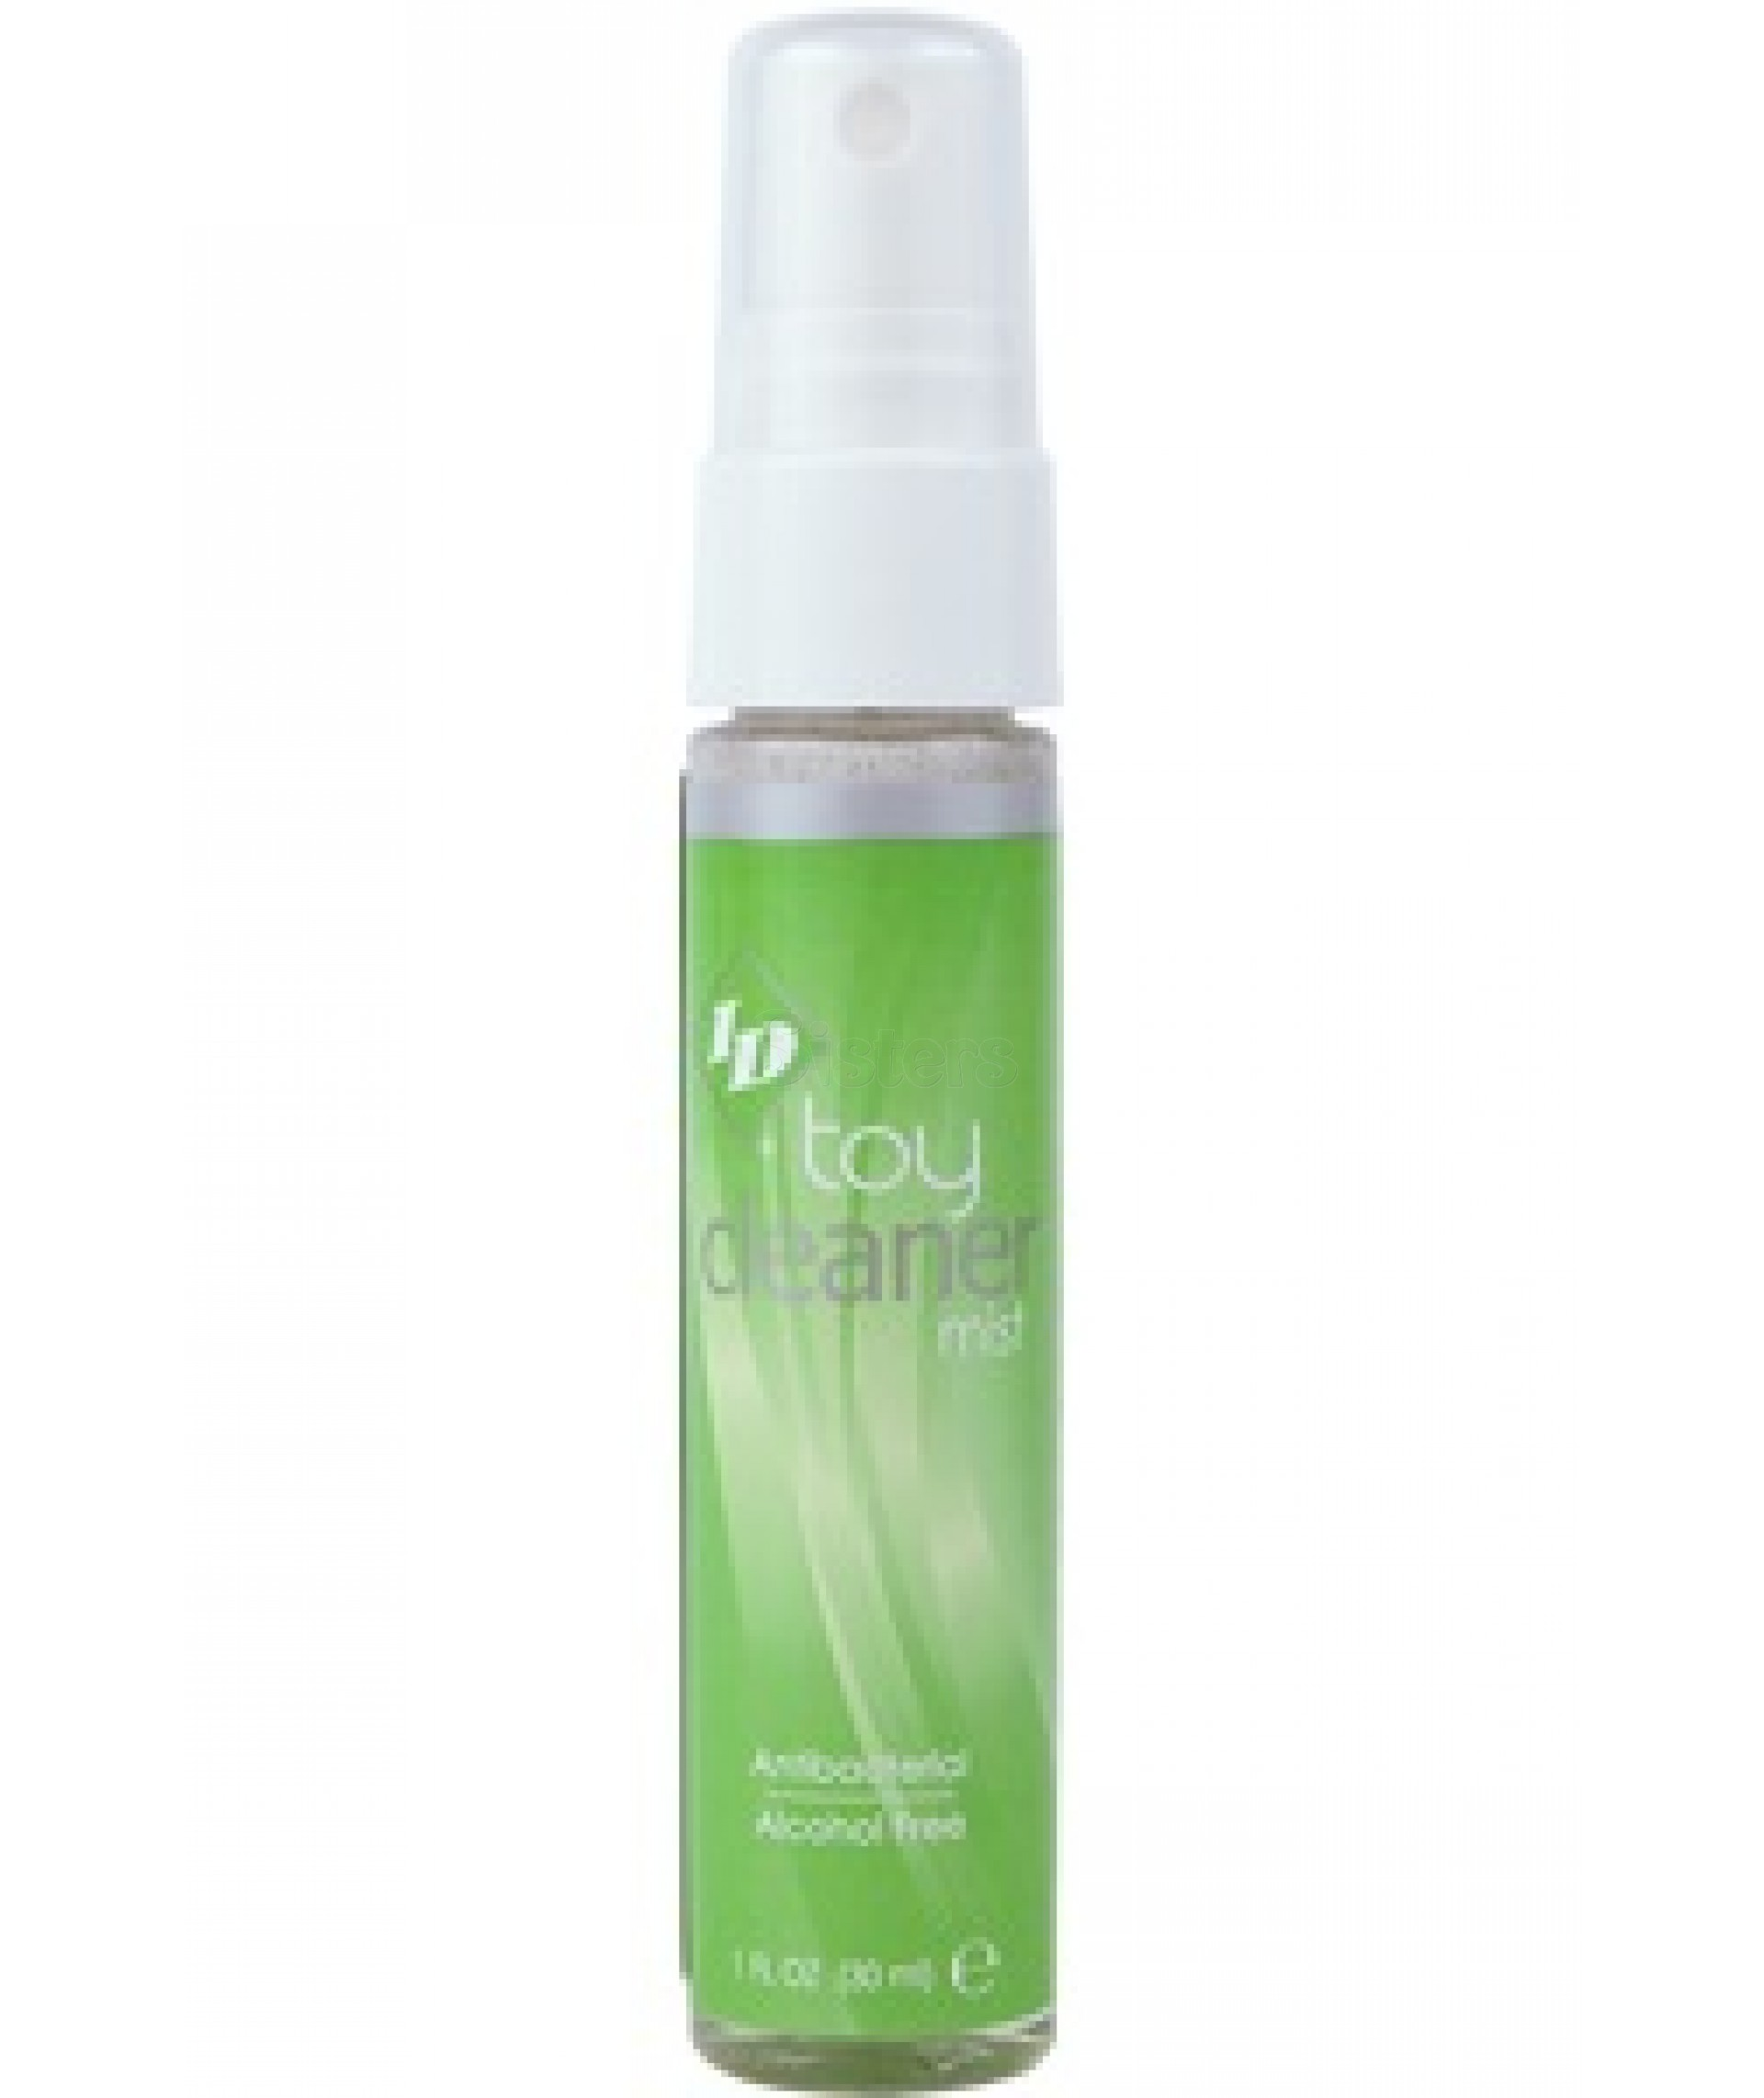 ID TOY CLEANER 30ml